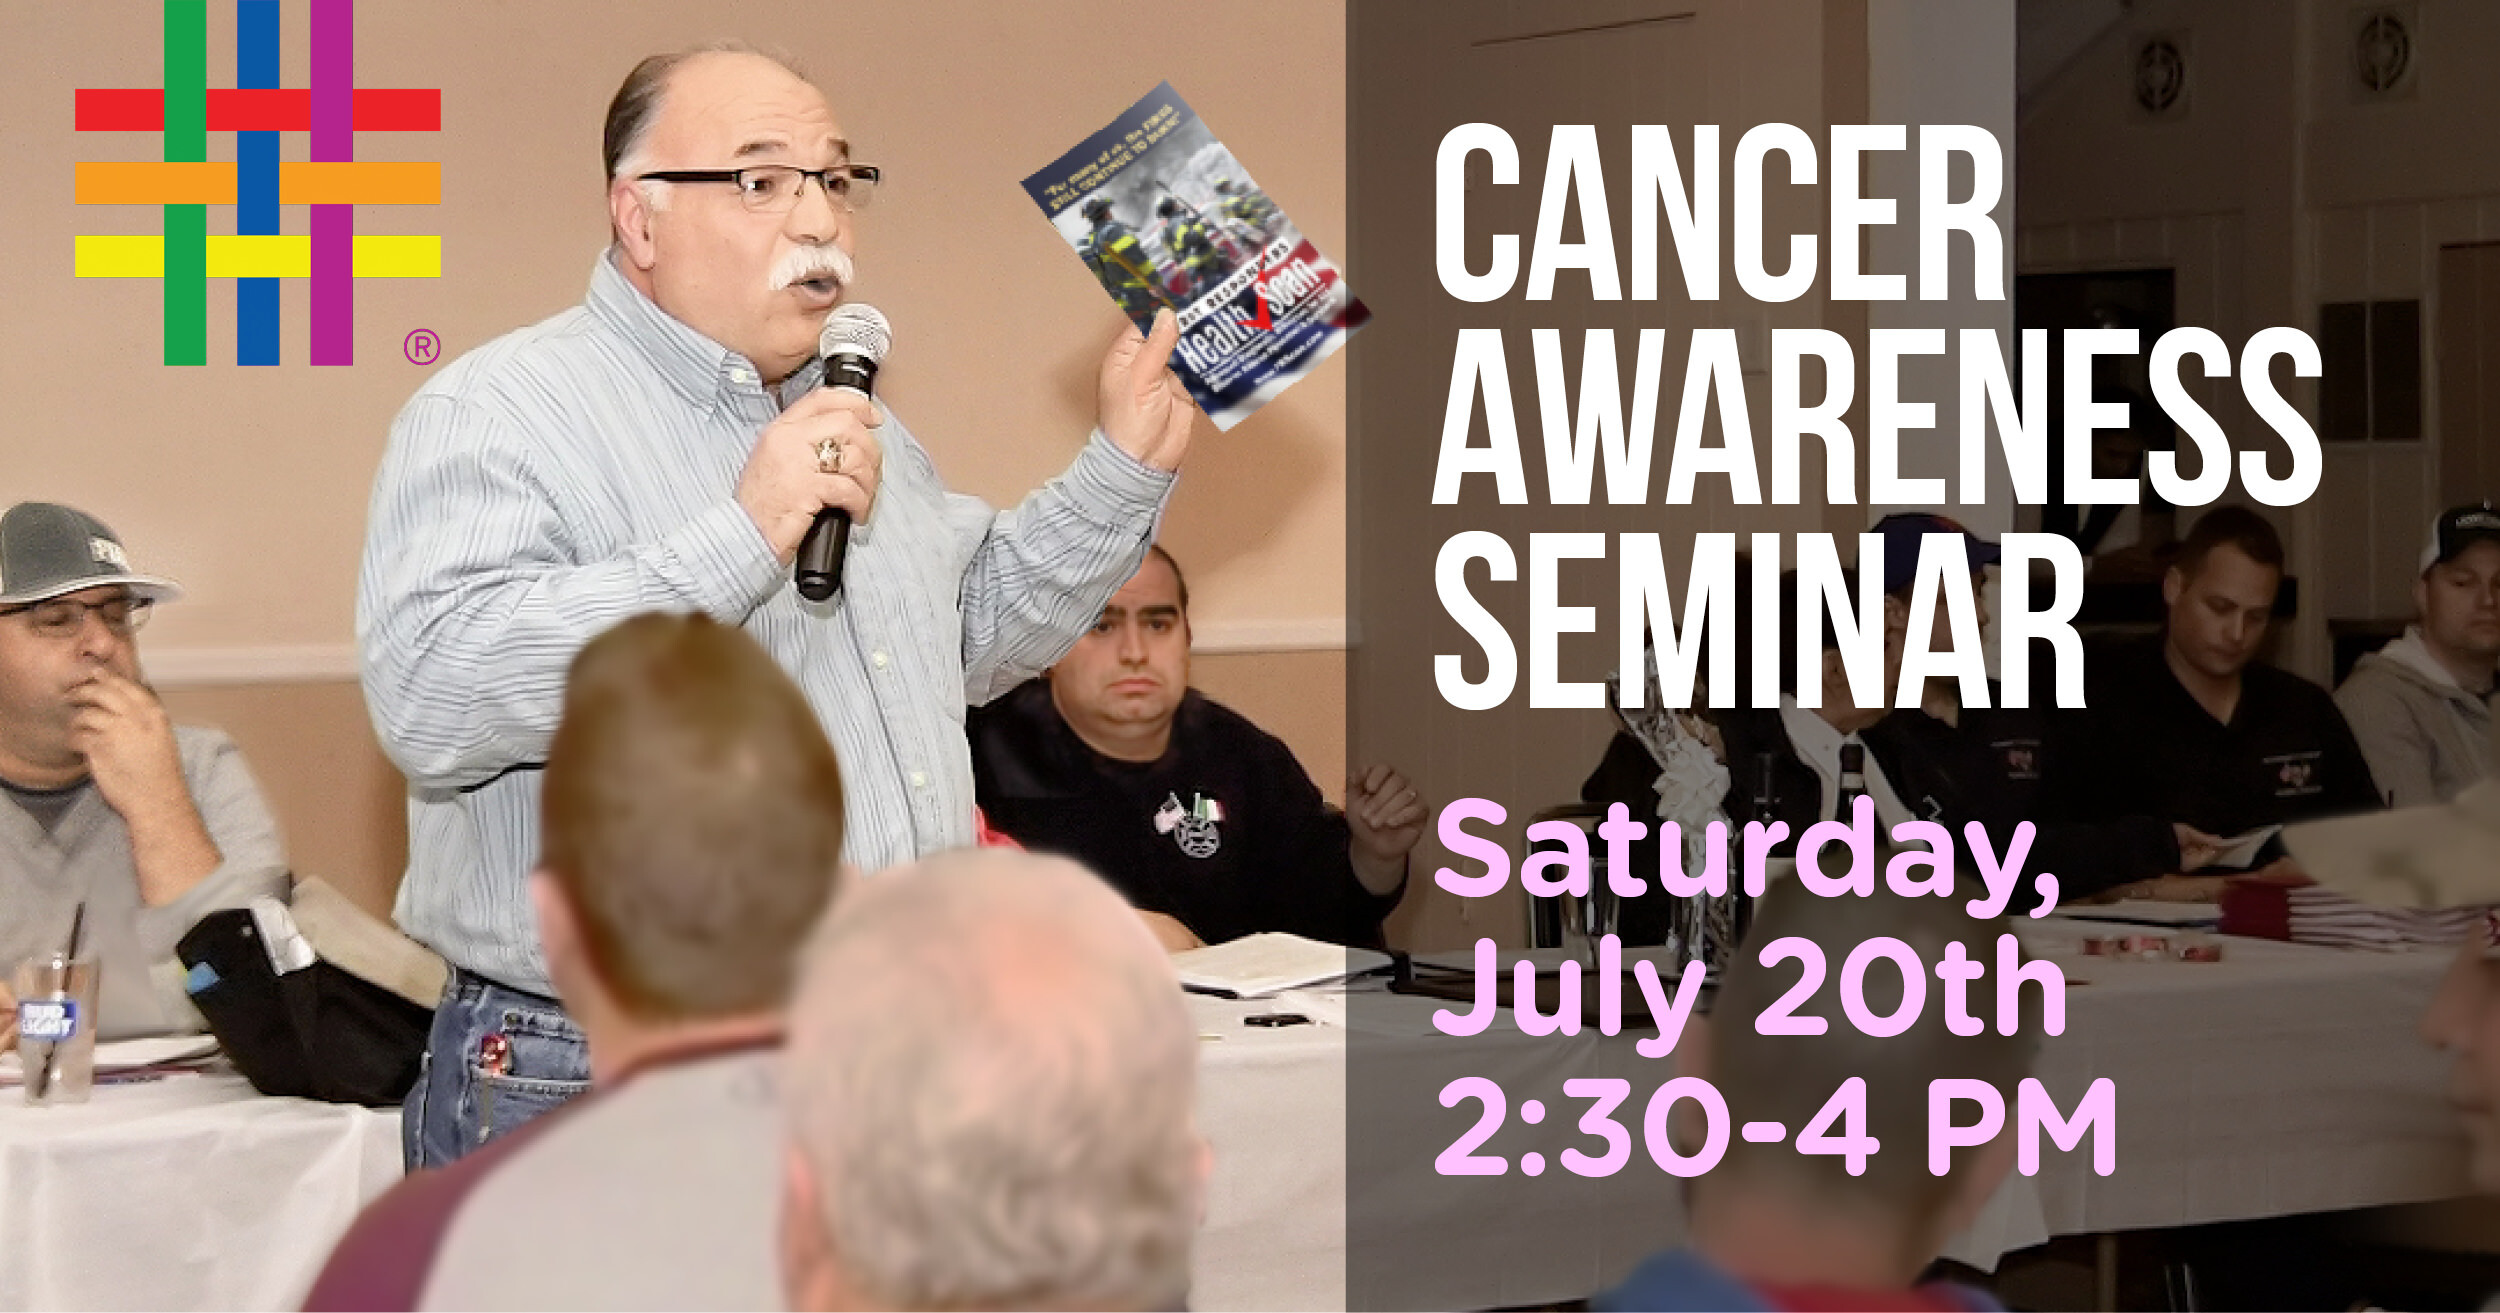 Cancer Awareness Seminar at Brooklyn Community Pride Center